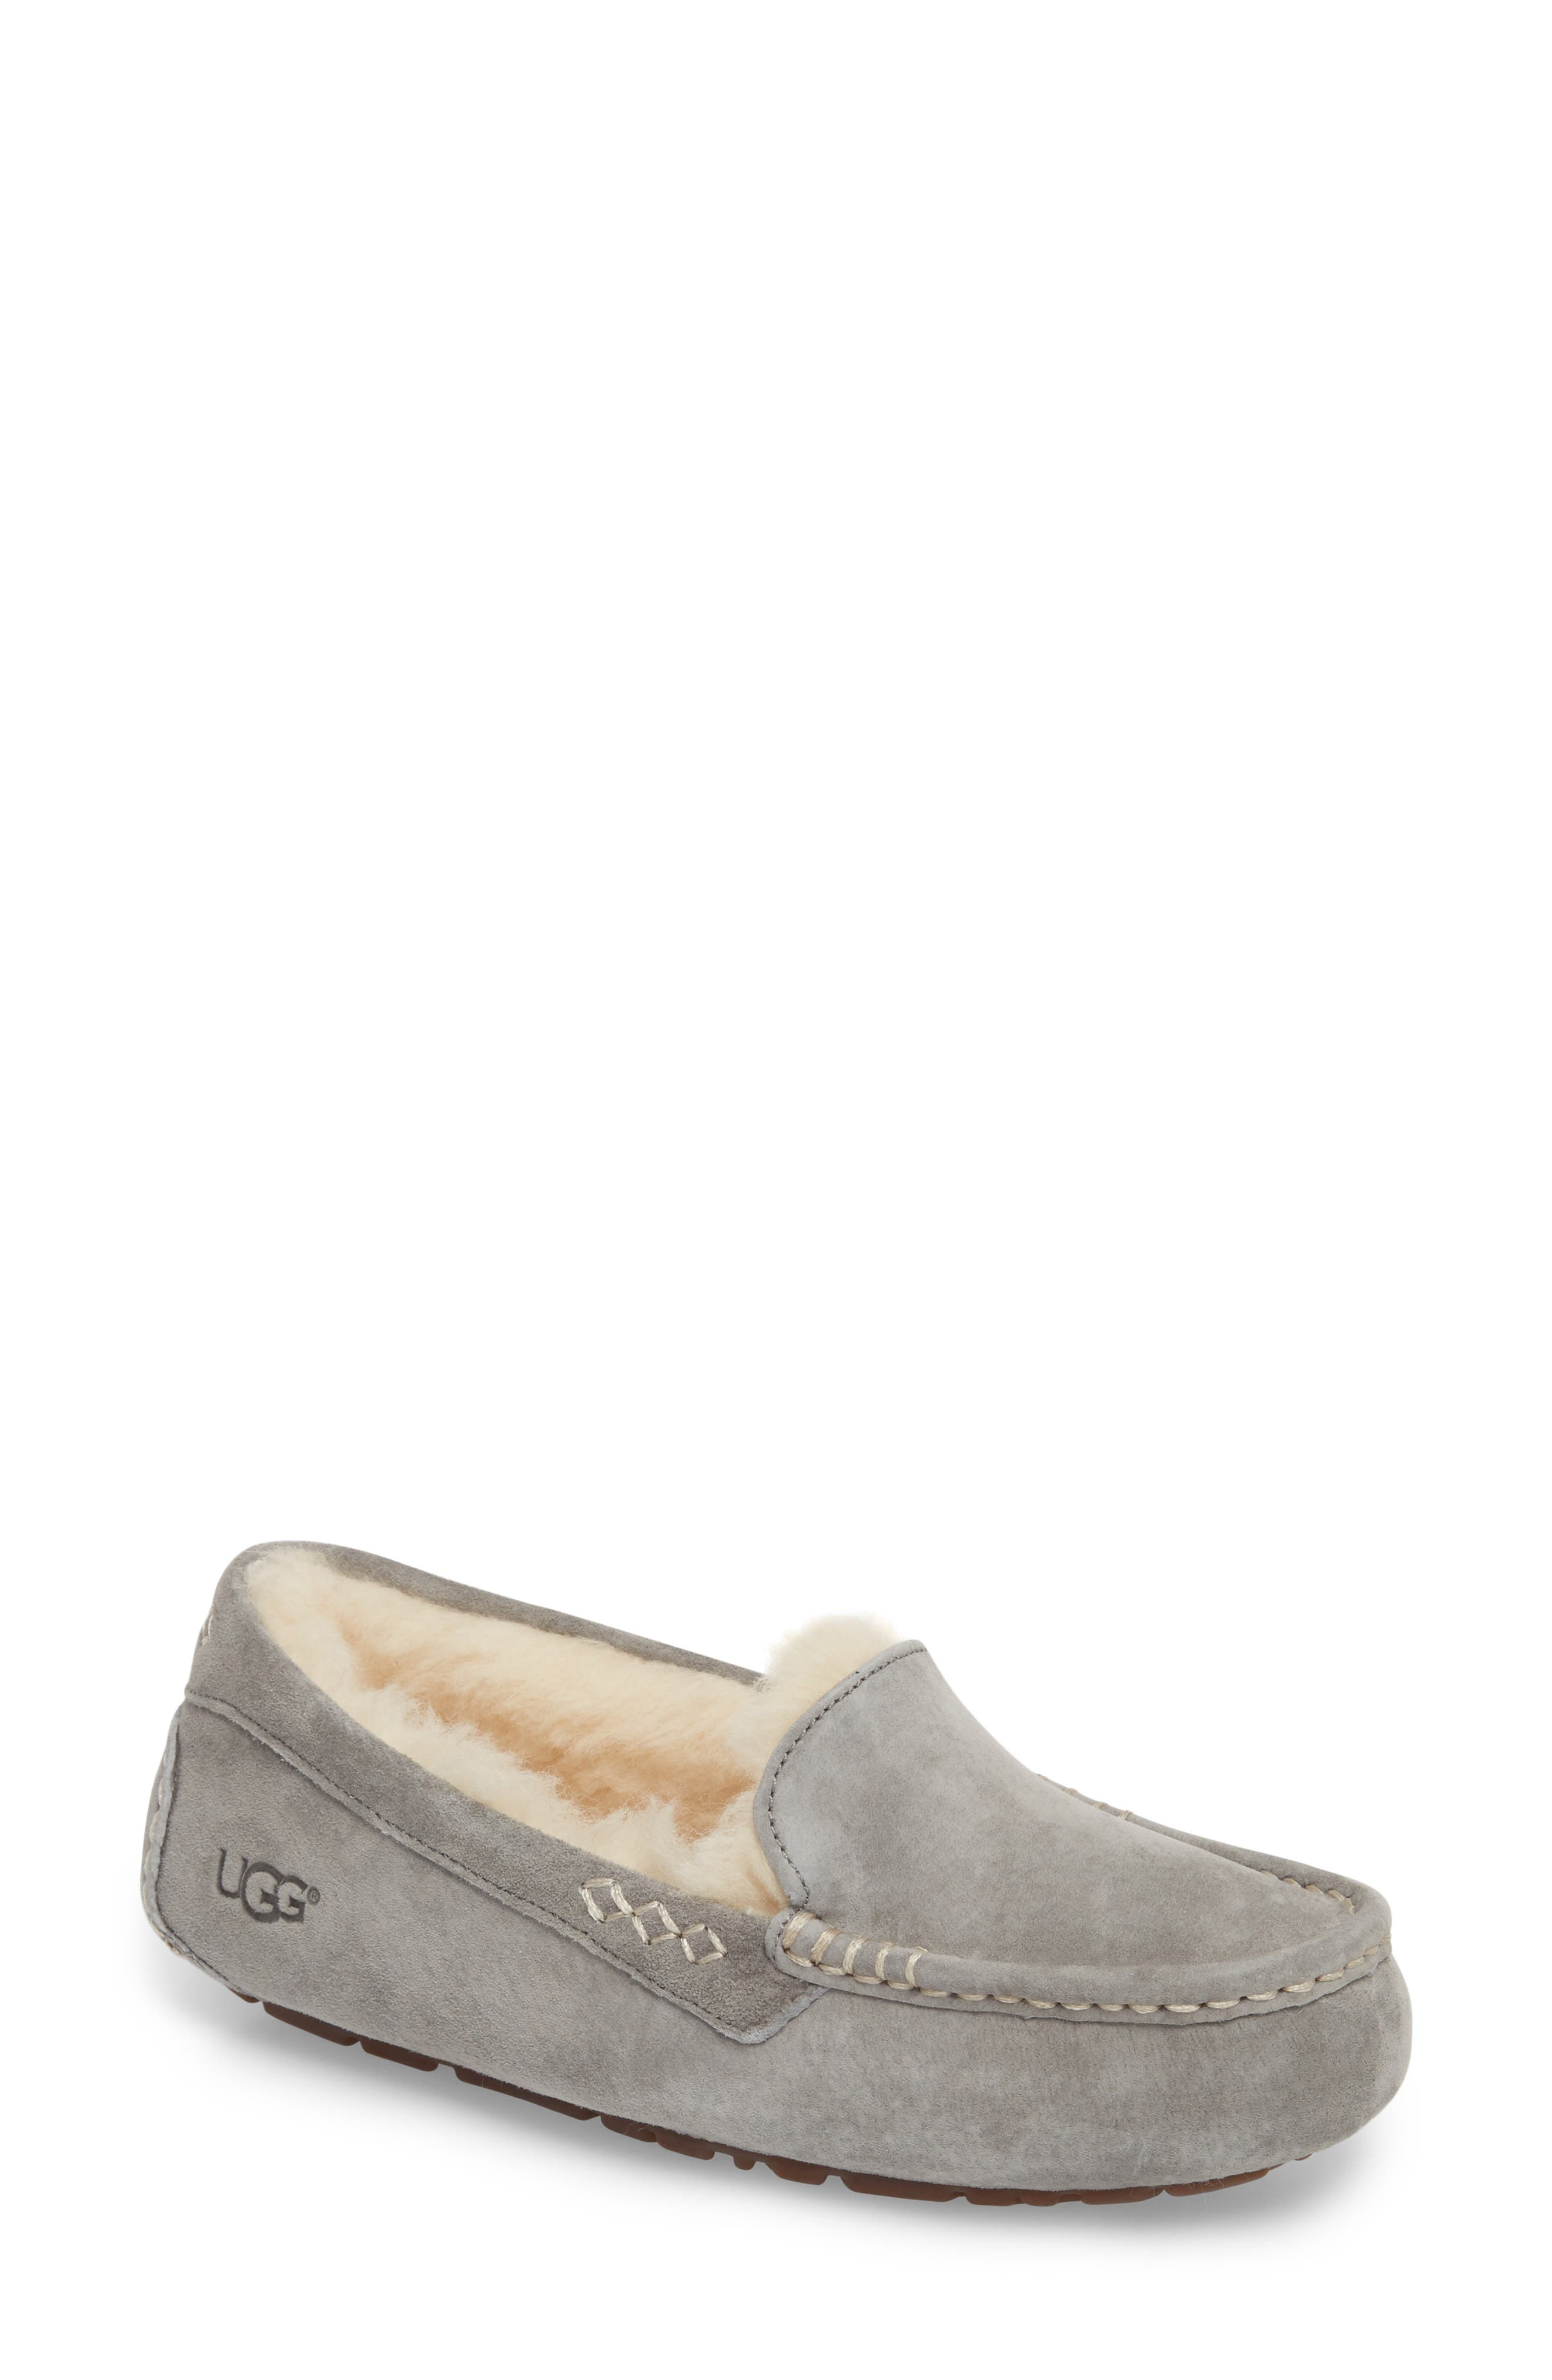 Ansley Water Resistant Slipper,                             Main thumbnail 1, color,                             LIGHT GREY